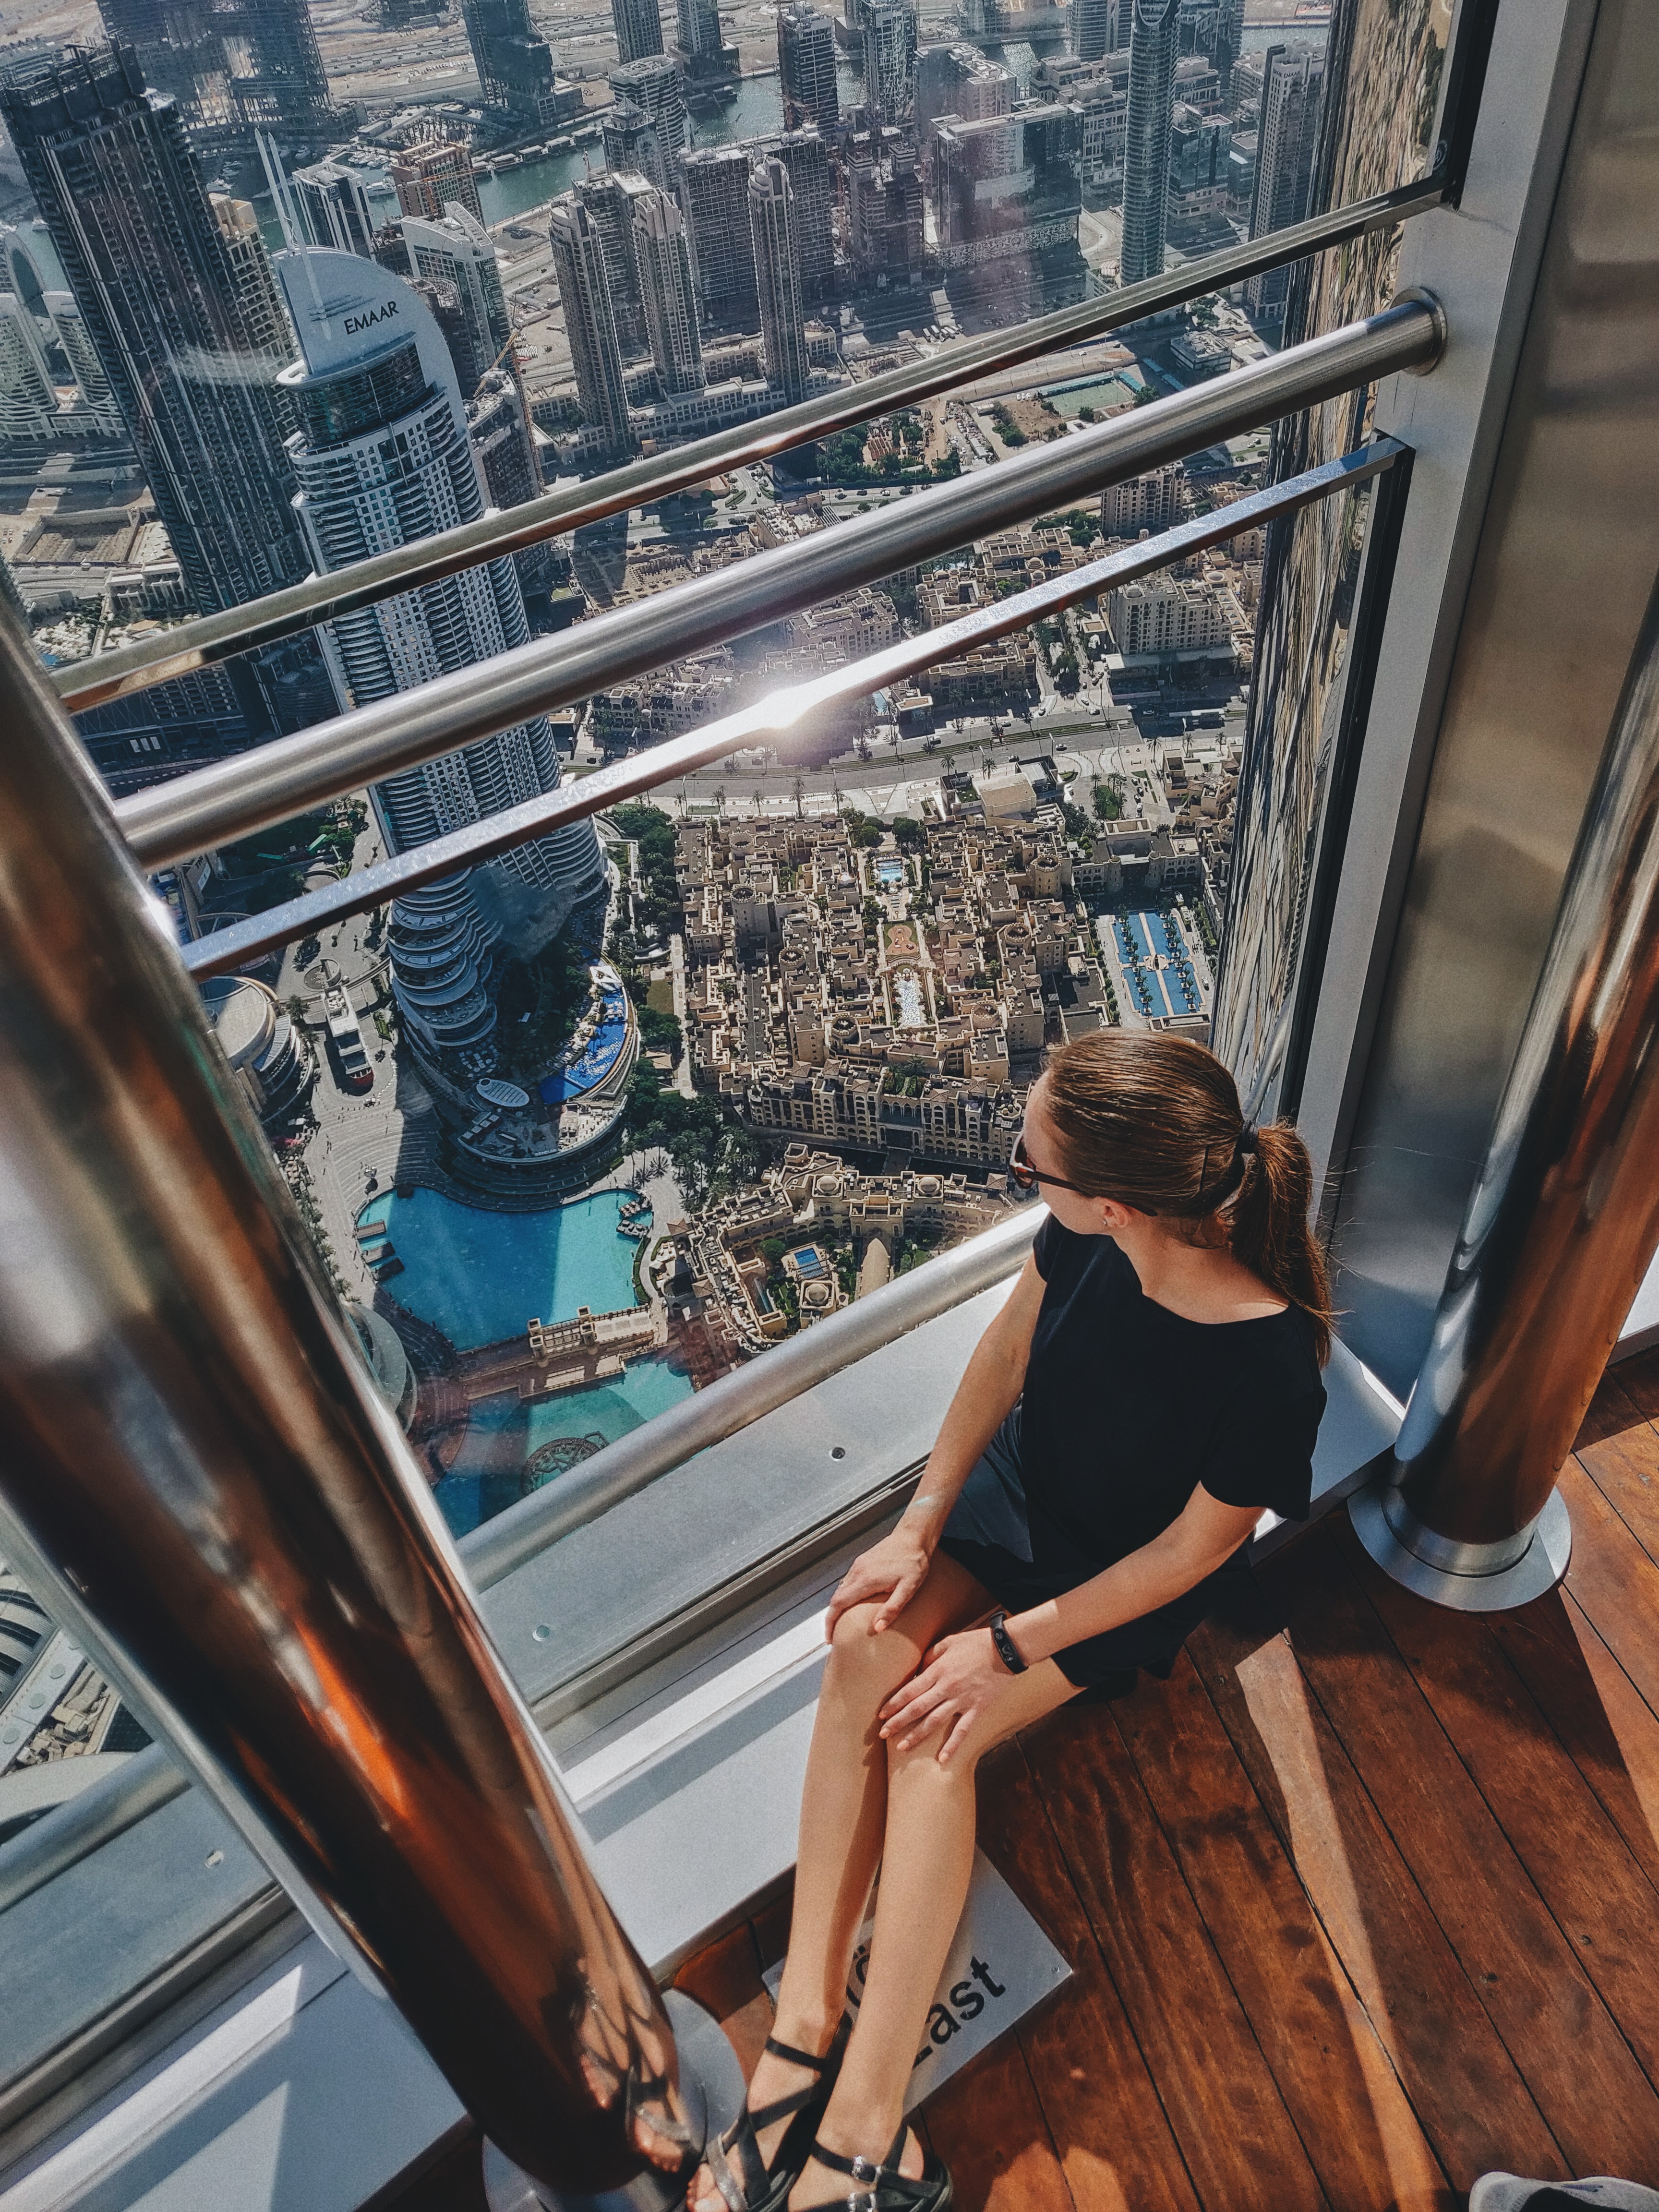 A girl is sitting on the floor at the lookout platform at the top of the Burj Khalifa in Dubai, UAE. She is looking down at the Address Hotel in downtown Dubai